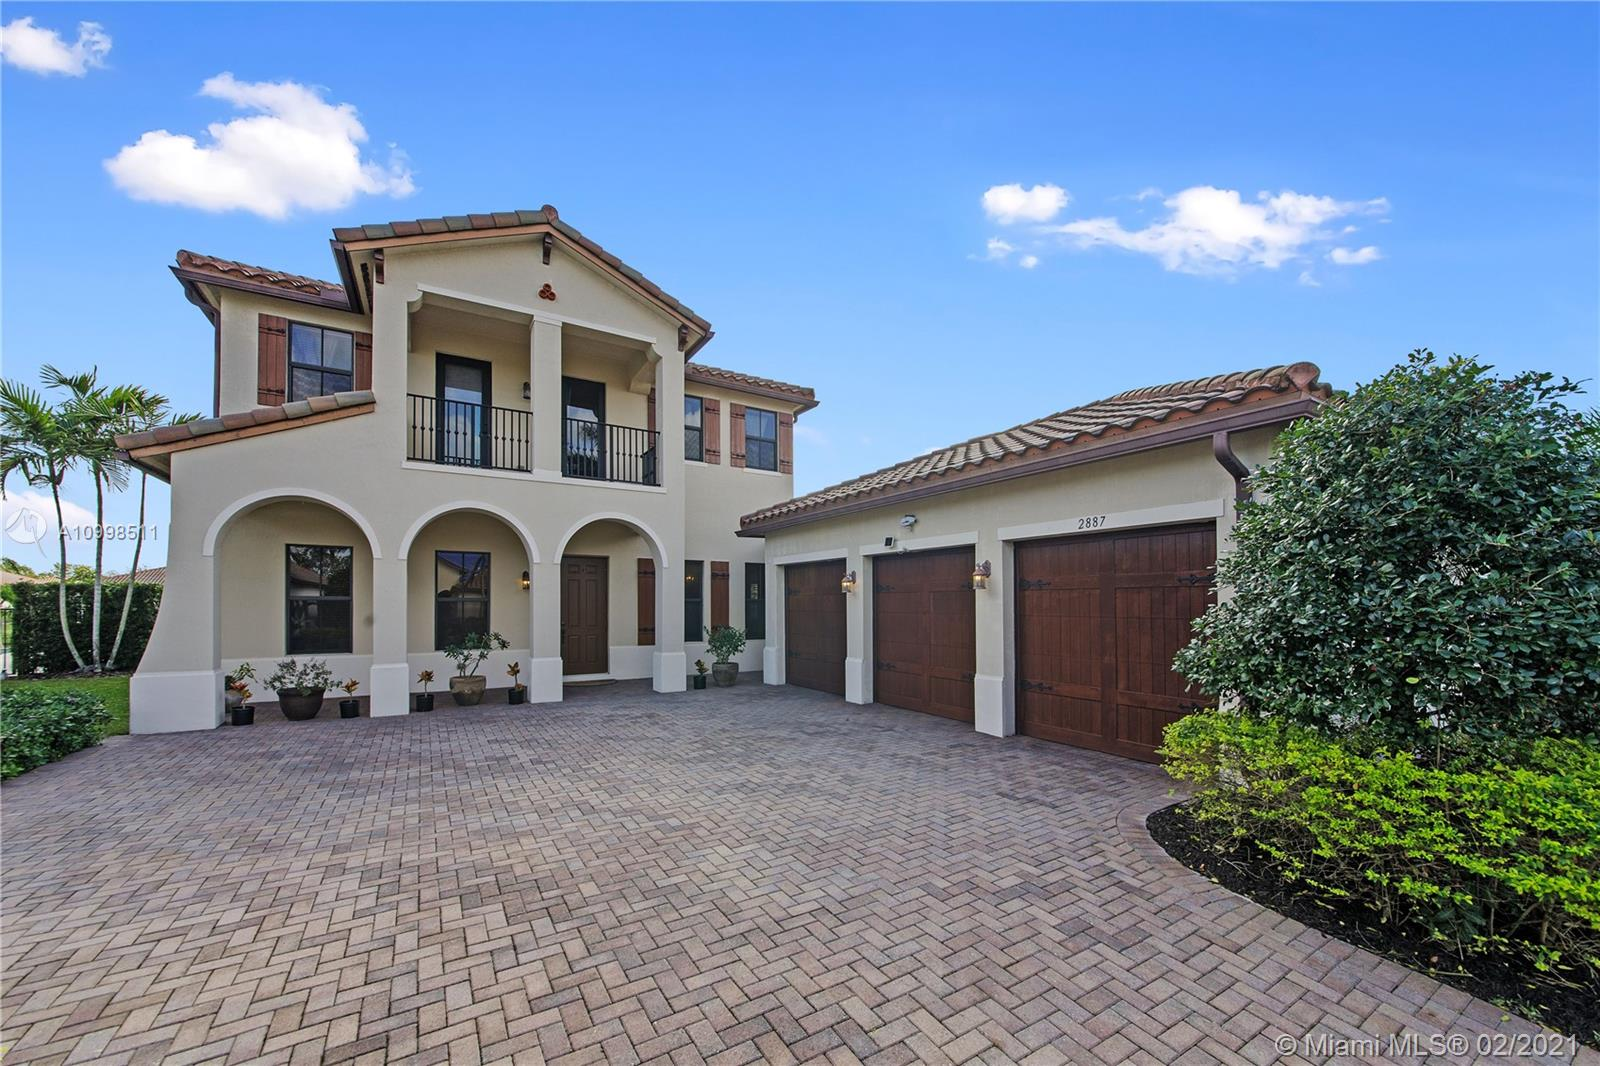 WELCOME TO COOPER CITY'S MOST SOUGHT AFTER GATED COMMUNITY! THIS WATERFRONT CAMBRIA MODEL OFFERS 5 BEDROOMS AND 3.5 BATHROOMS WITH SPECTACULAR WATERVIEWS. ADDITIONAL FEATURES INCLUDE MASTER SUITE DOWNSTAIRS, 3 CAR GARAGE, HURRICANE IMPACT WINDOWS AND ROOM FOR POOL. THE COMMUNITY OF MONTERRA OFFERS RESORT STYLE AMENITIES INCLUDING TENNIS & BASKETBALL COURTS, FITNESS CENTER, TOT LOT AND DOG PARK. A+ RATED SCHOOLS, JUST MINUTES FROM THE AIRPORT AND MAJOR HIGHWAYS. PRICE IS FIRM, NOT CONTINGENT ON APPRAISAL. SHOWINGS BEGIN 02/27/2021